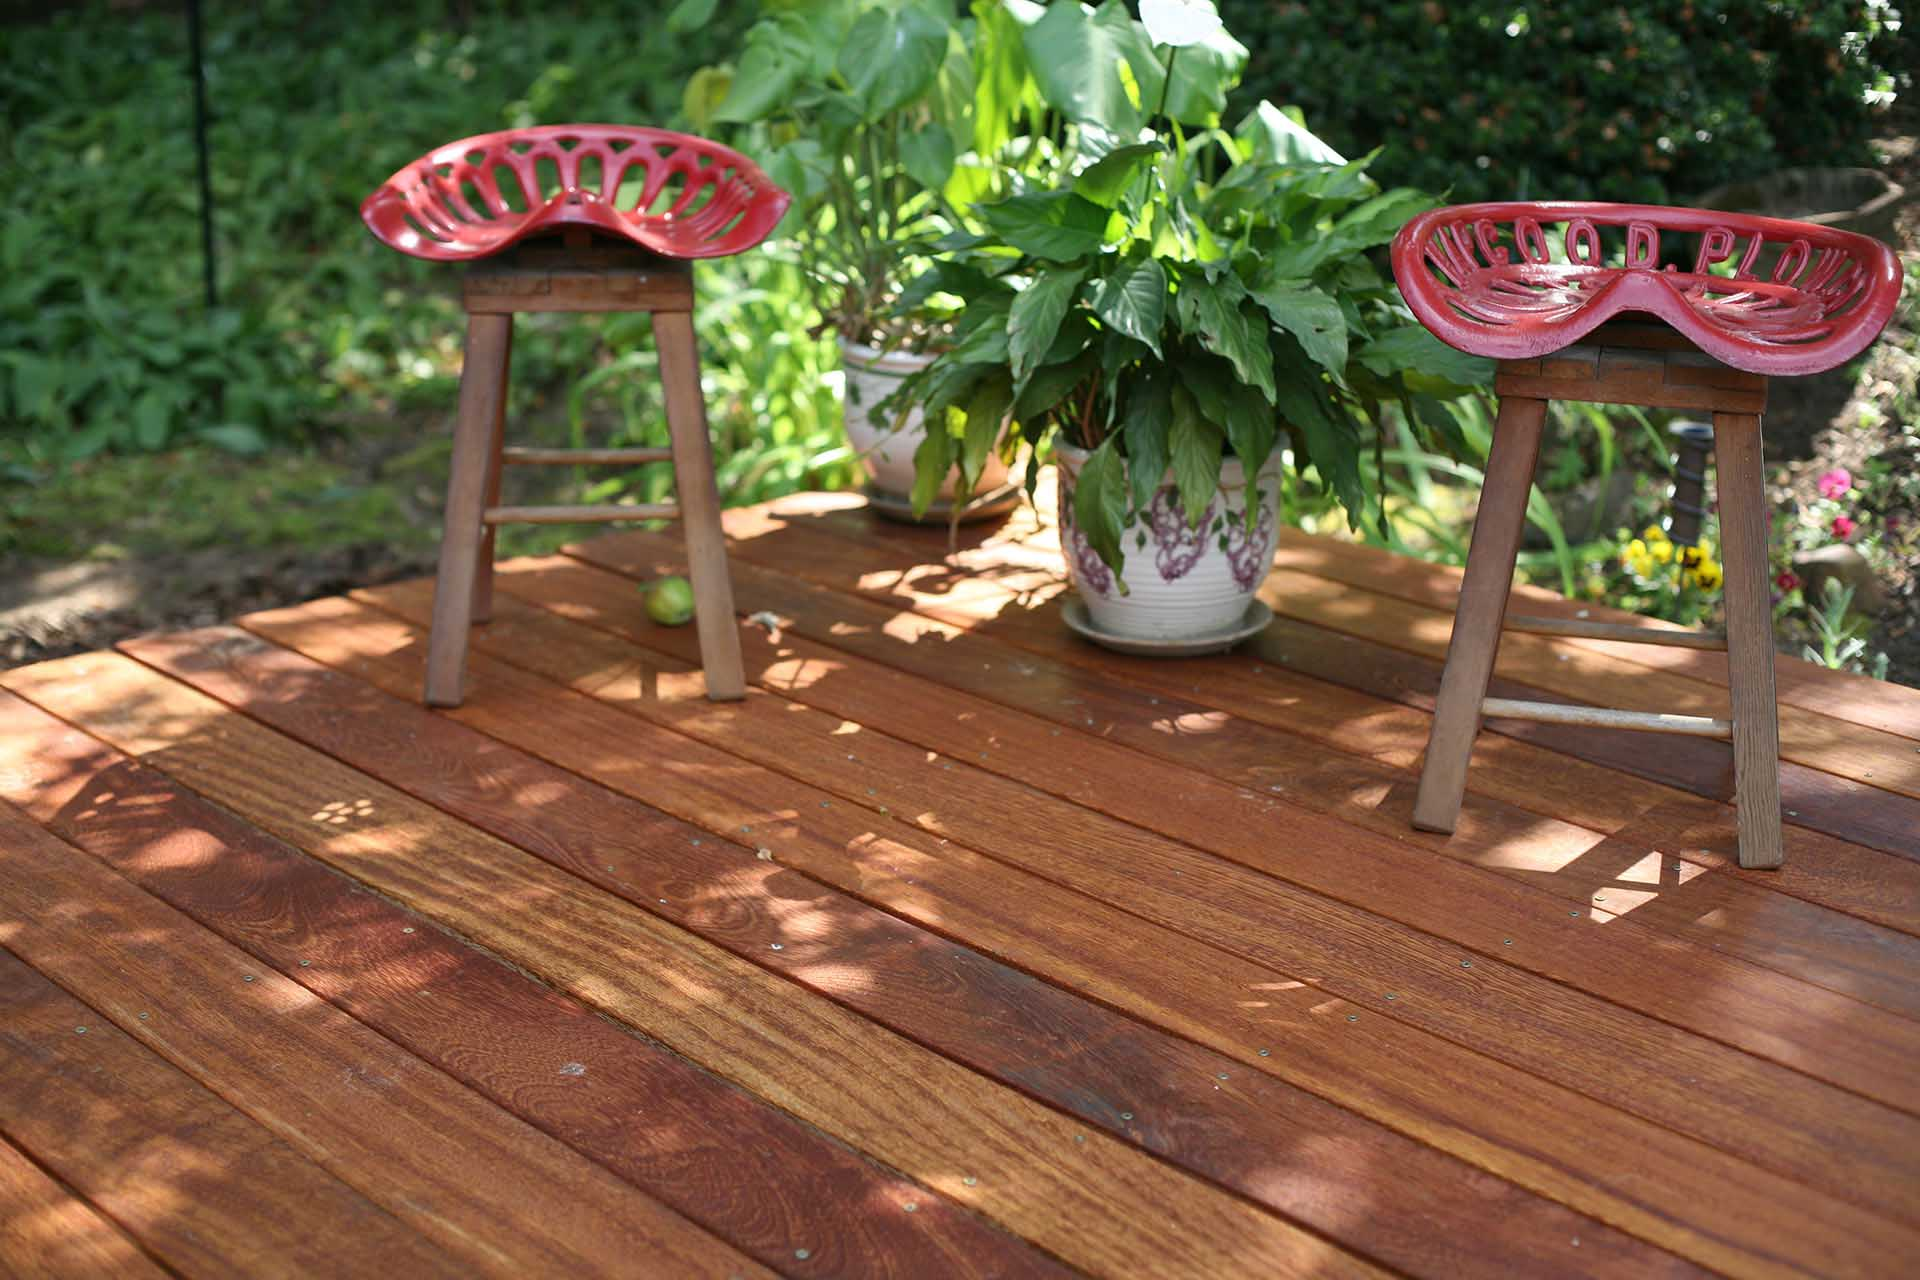 Hardwood_Decking_angelim-pedra-red-stools.jpg